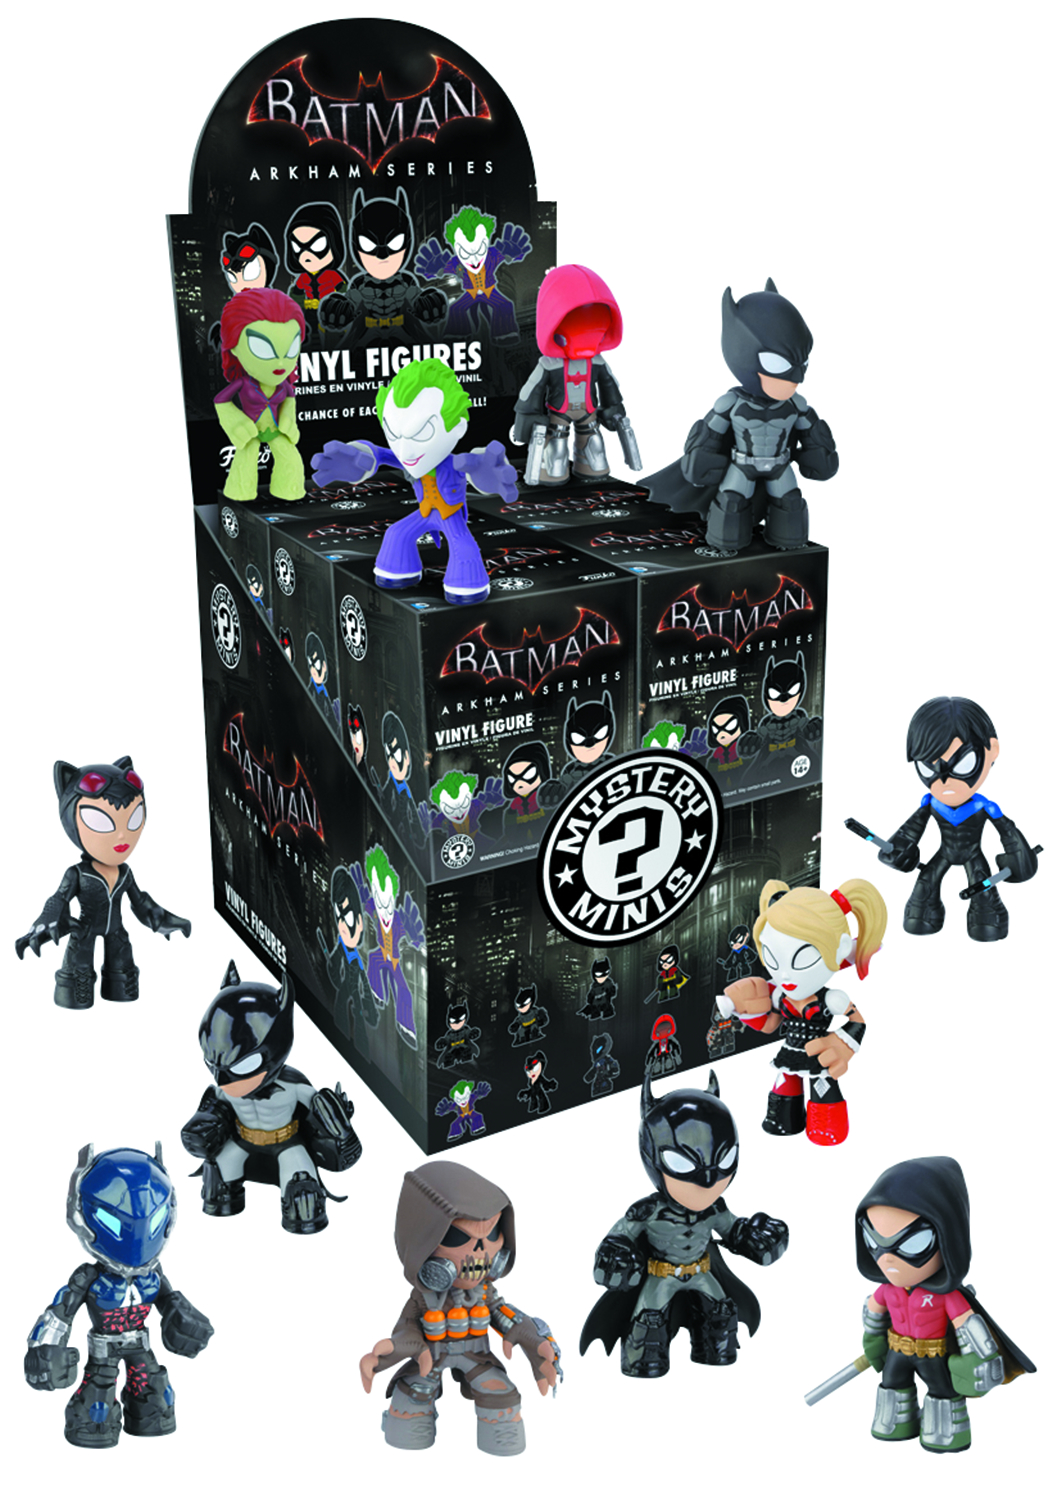 BATMAN ARKHAM KNIGHT MYSTERY MINIS 12PC BMB DISP